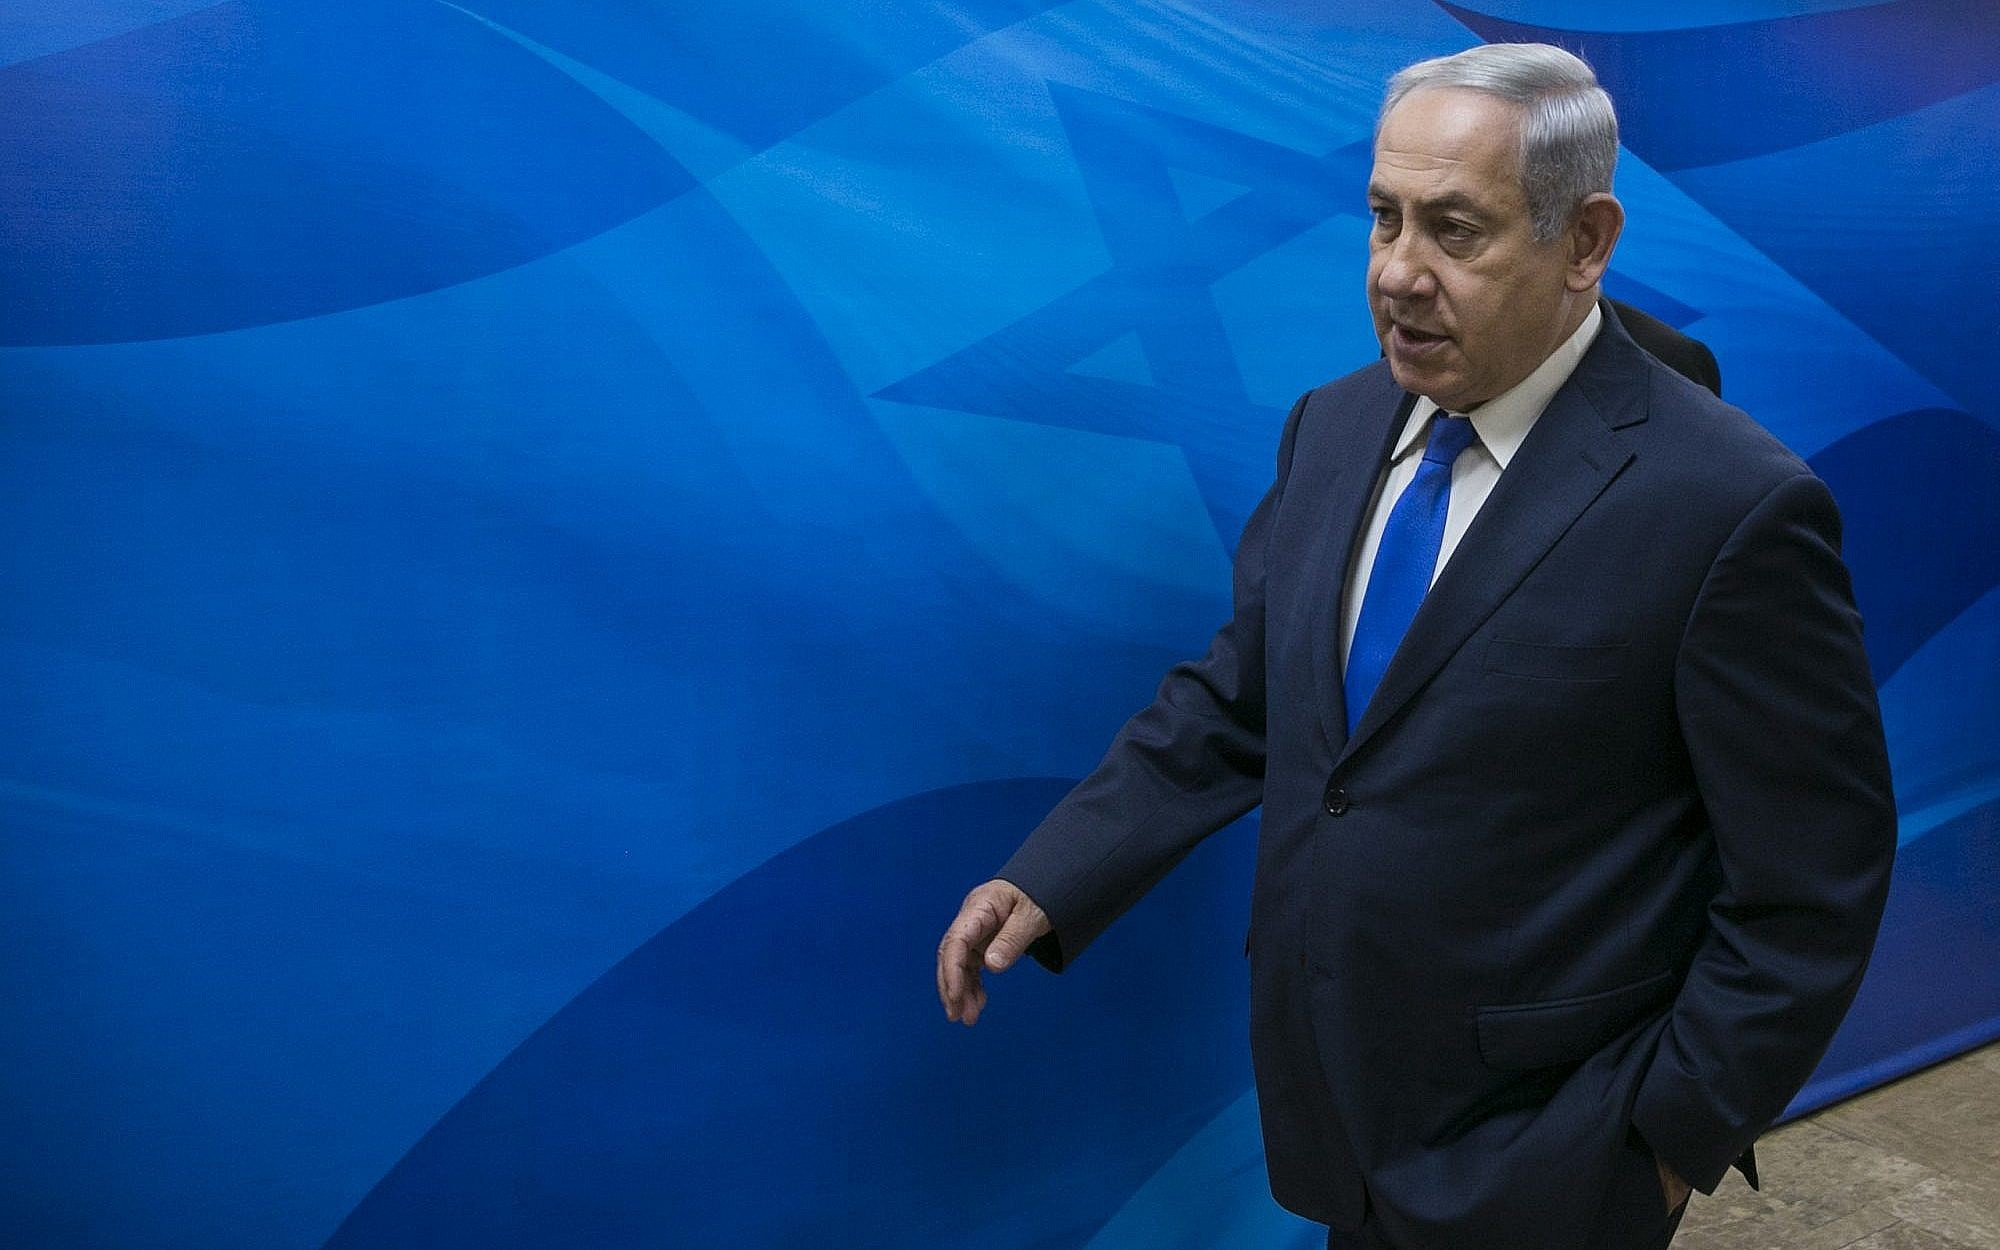 Israeli PM Netanyahu Questioned in Graft Probe